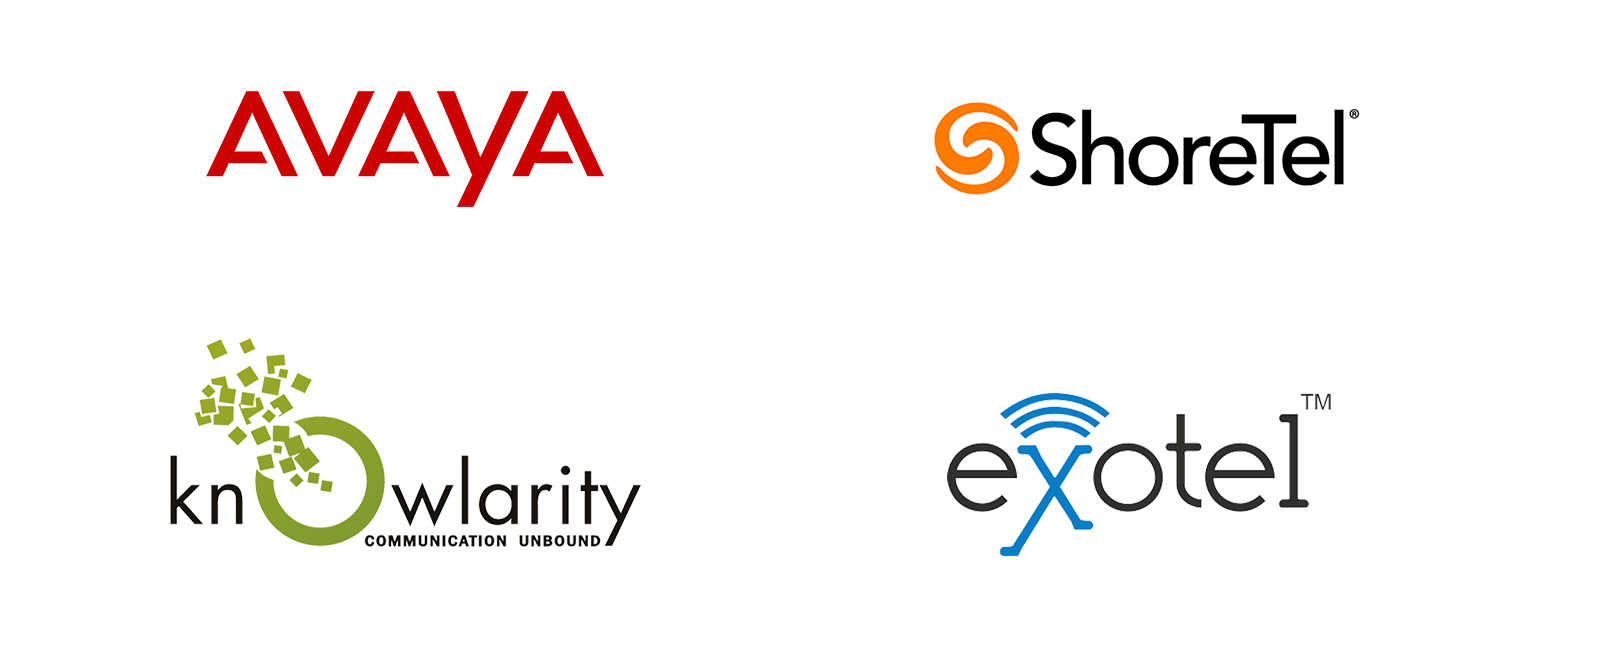 avaya, knowlarity